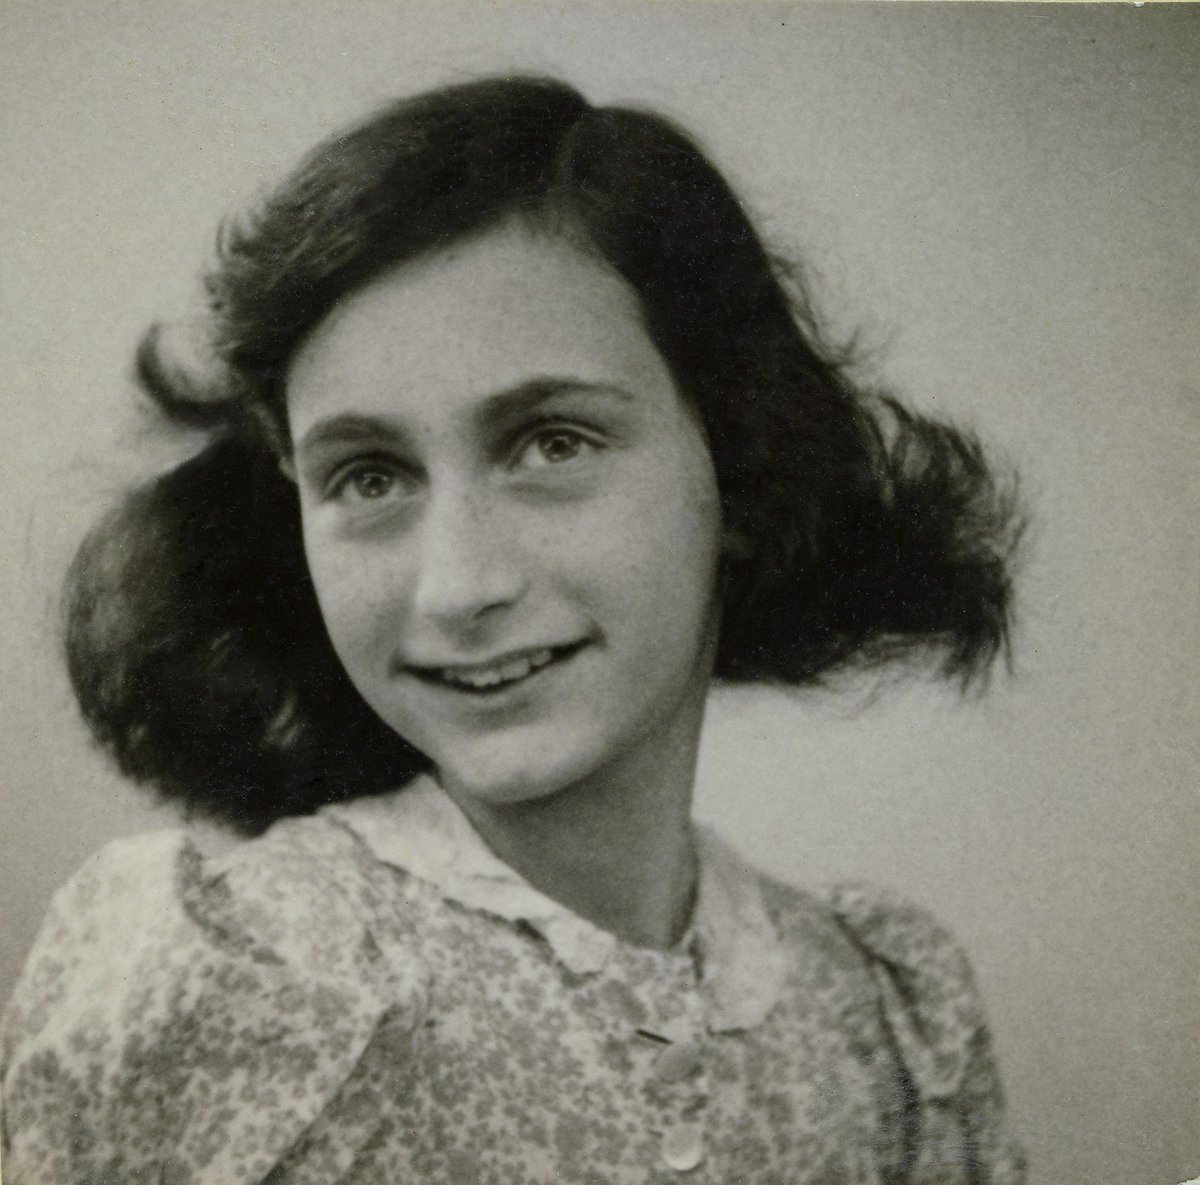 Anne Frank HouseVerified account